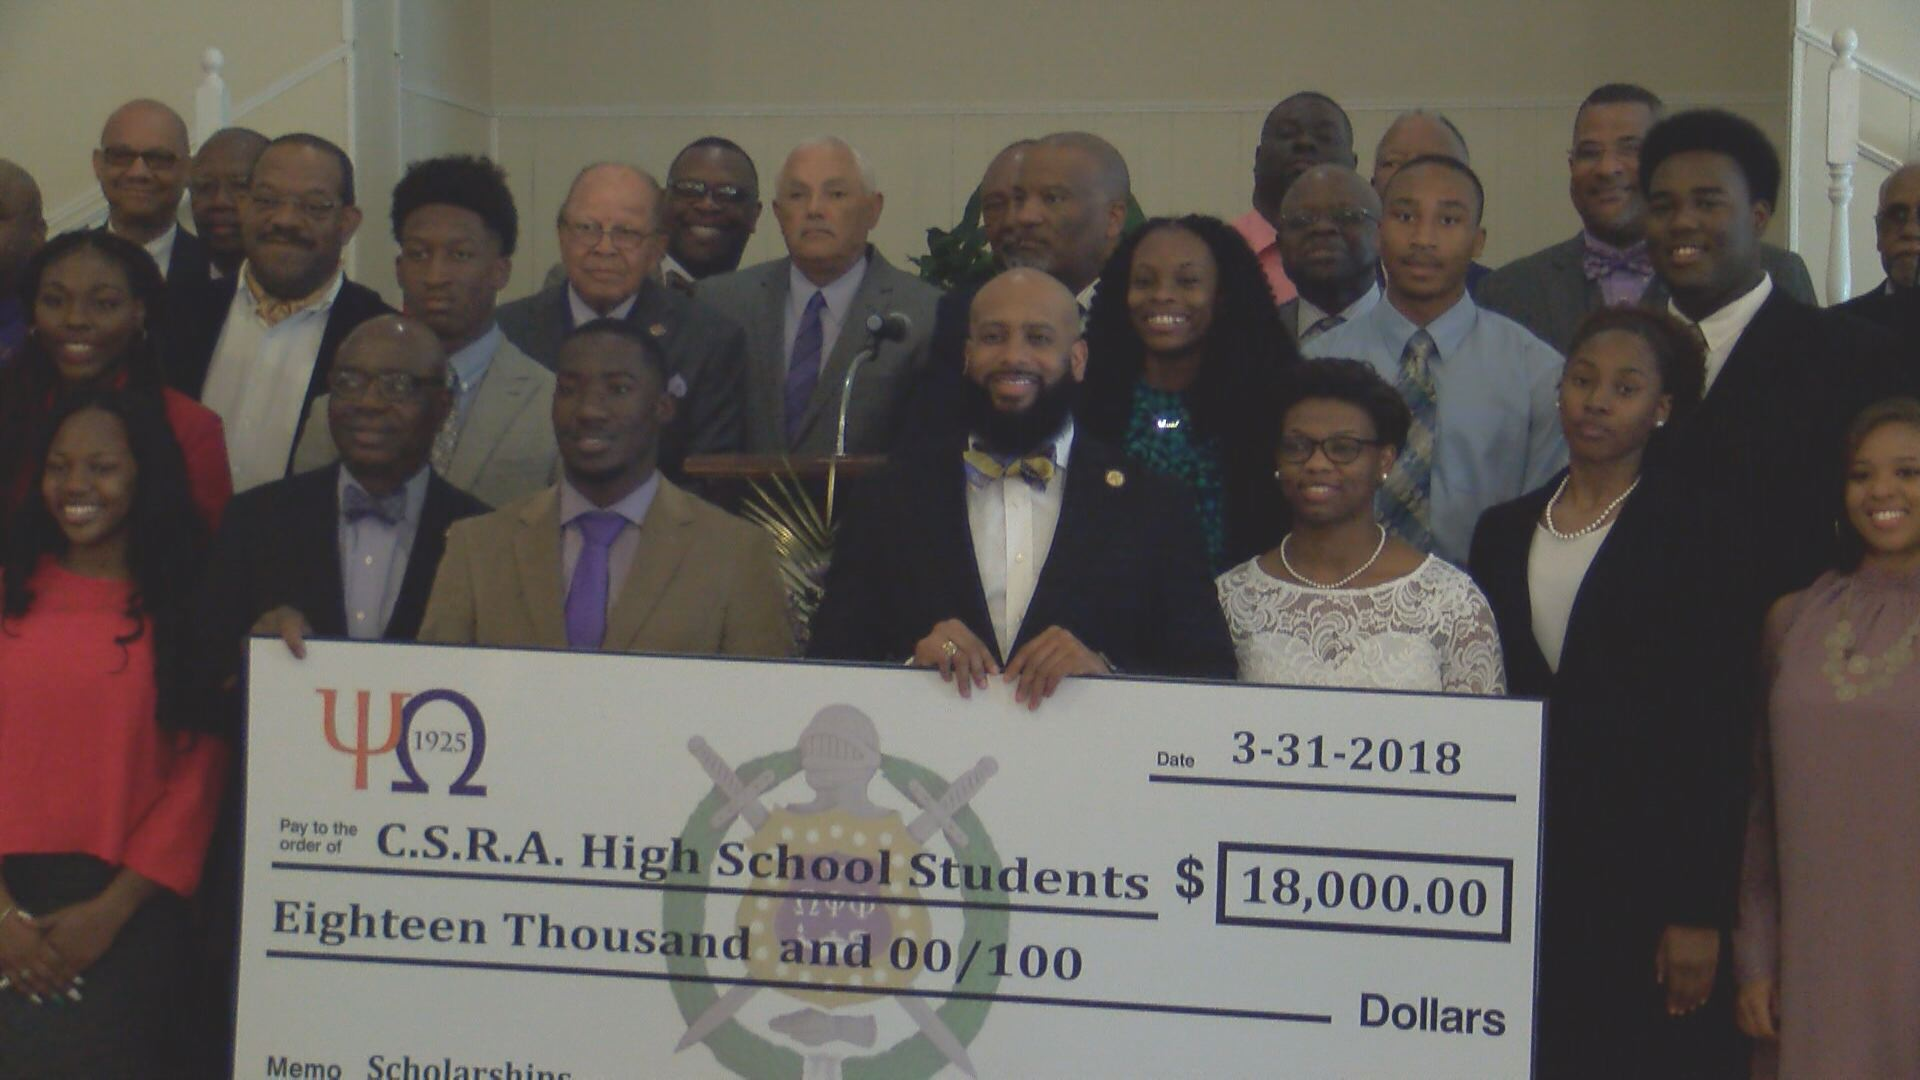 omega psi phi scholarship celebration_1522546850804.jpg.jpg